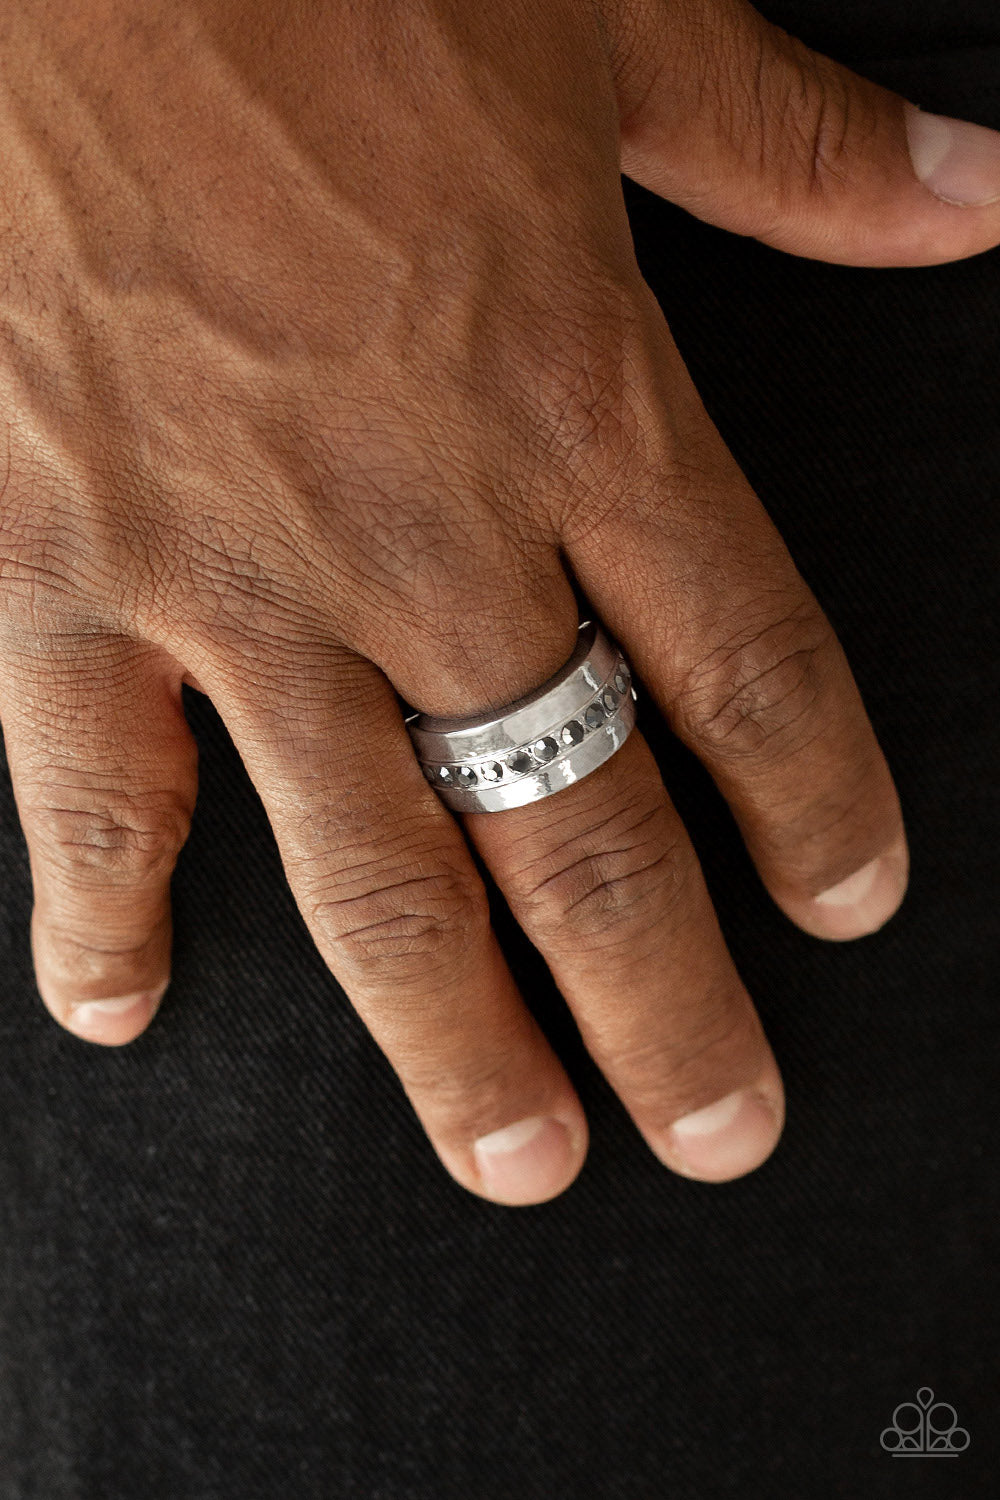 Reigning Champ - Silver Men's Ring